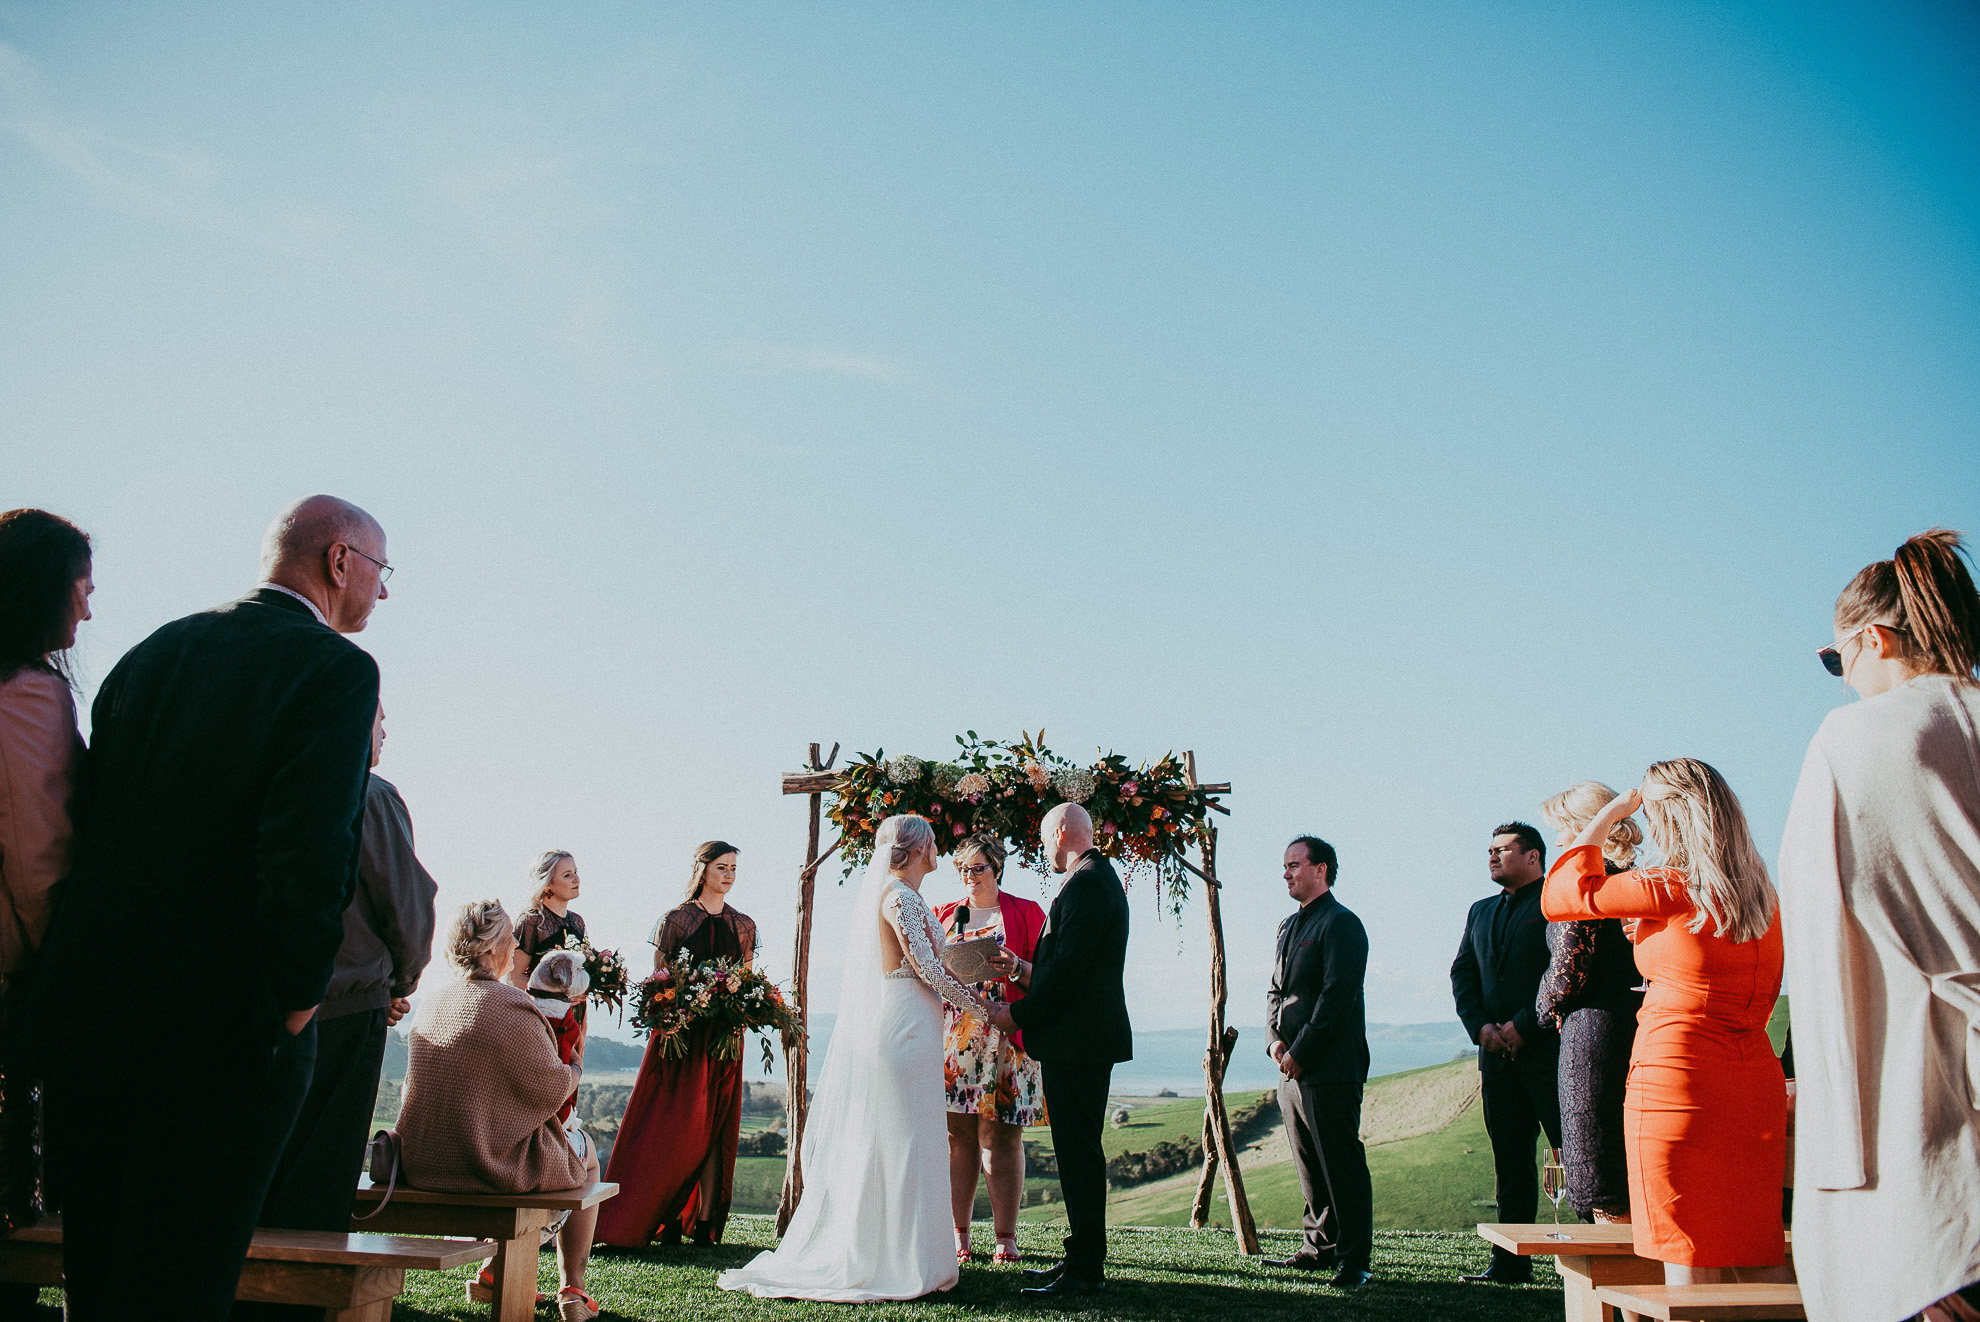 Kauri Bay Boomrock - Clevedon: {Auckland weddings}